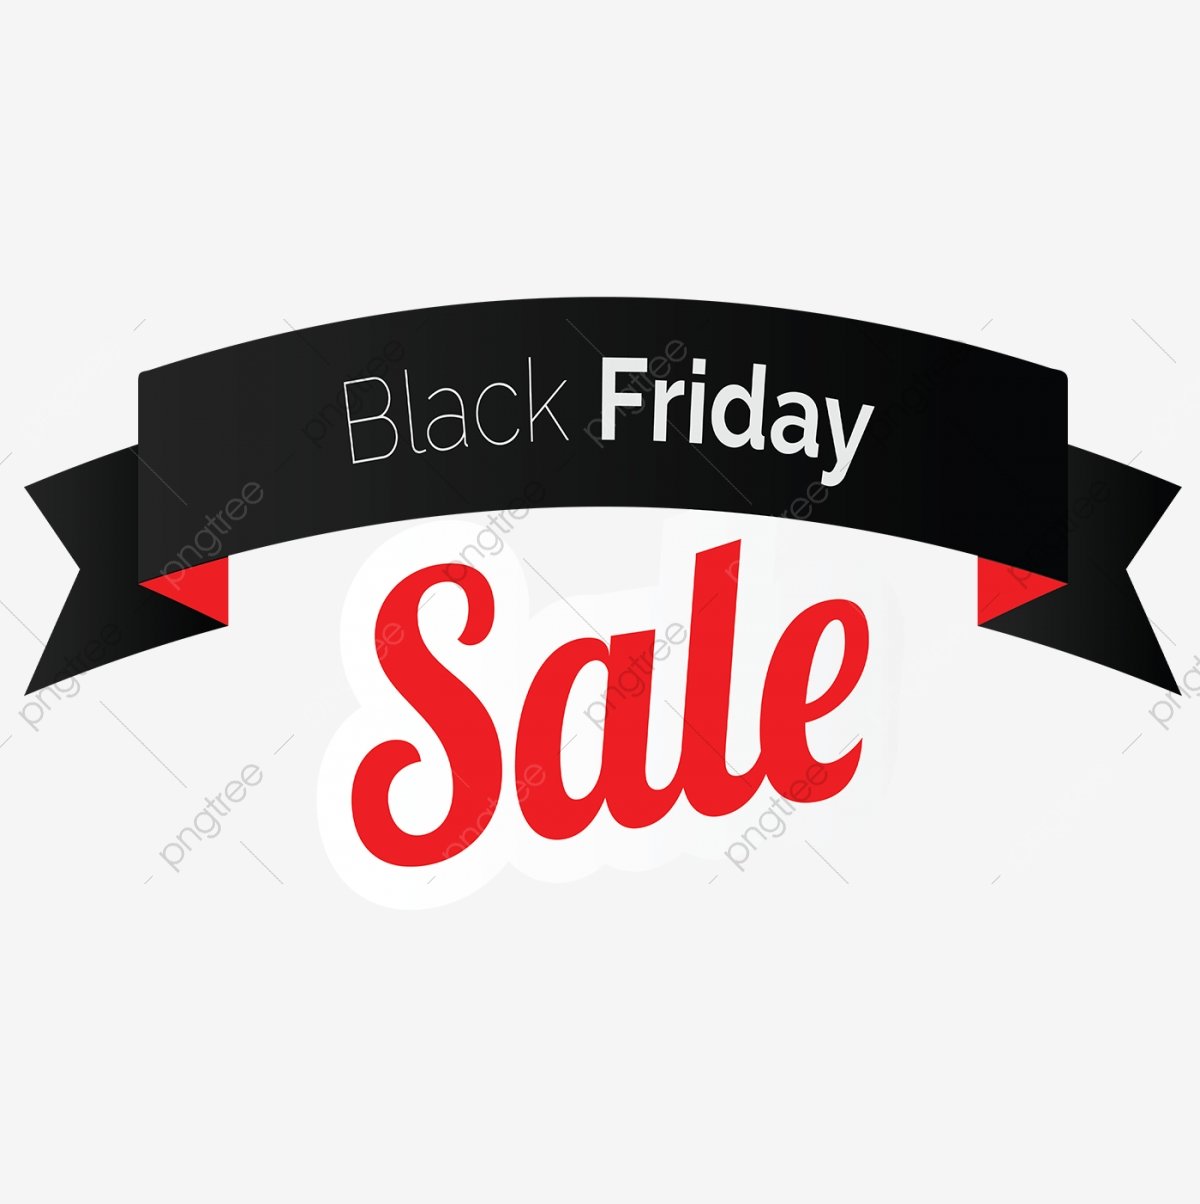 Black Friday Sale, Clipart, Black Friday, Sales PNG Transparent.